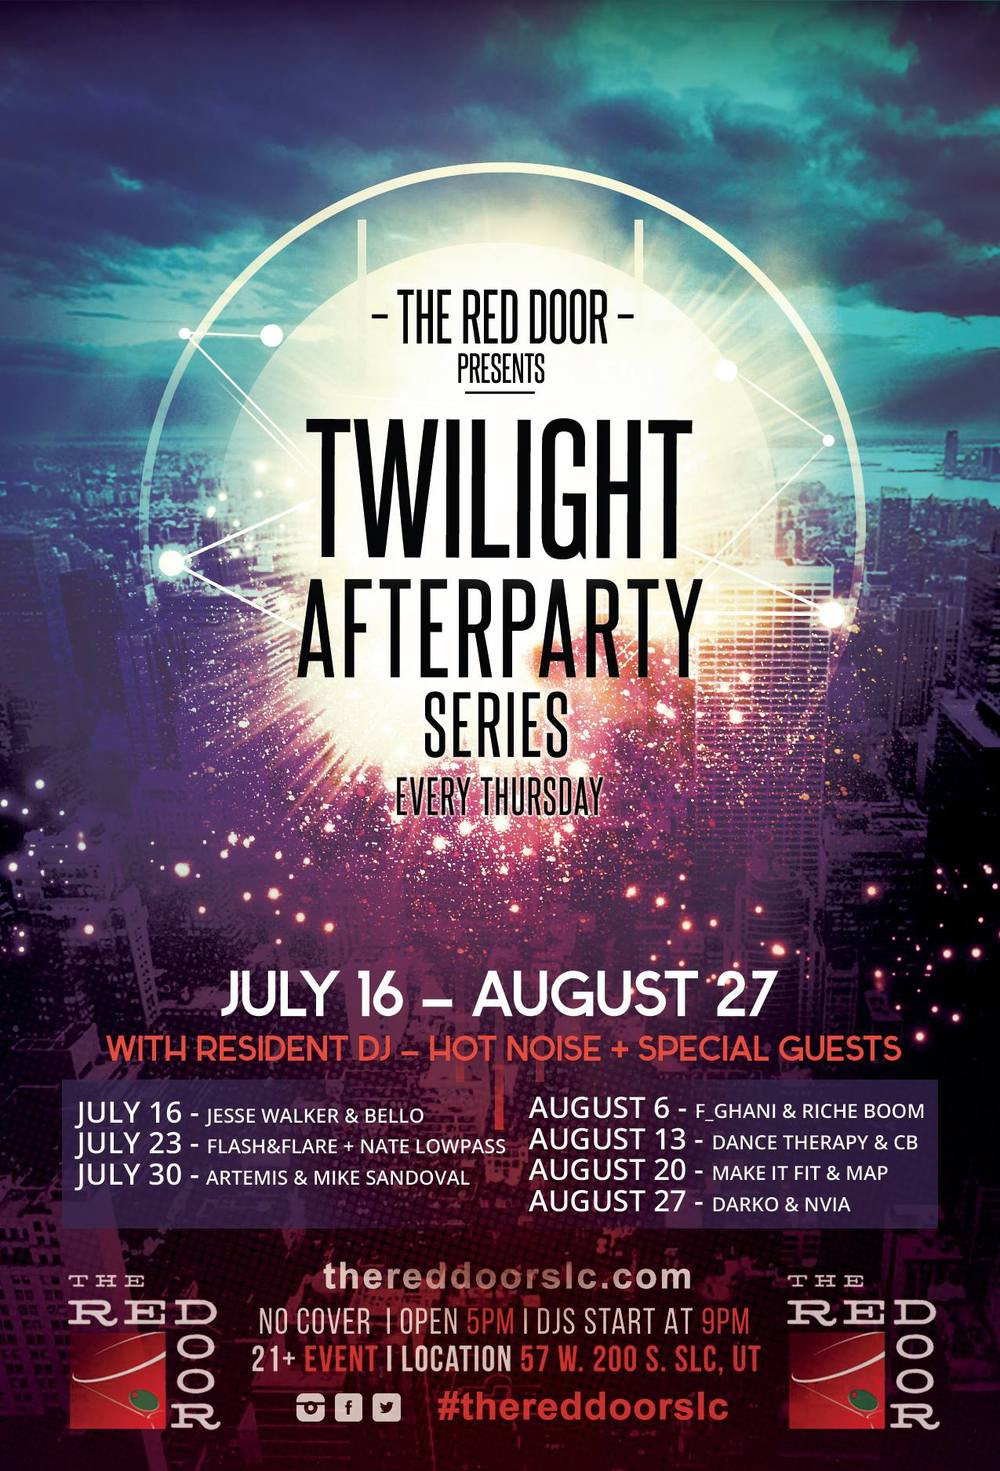 The Red Door Pres. Twilight Afterparty Series, Every Thursday